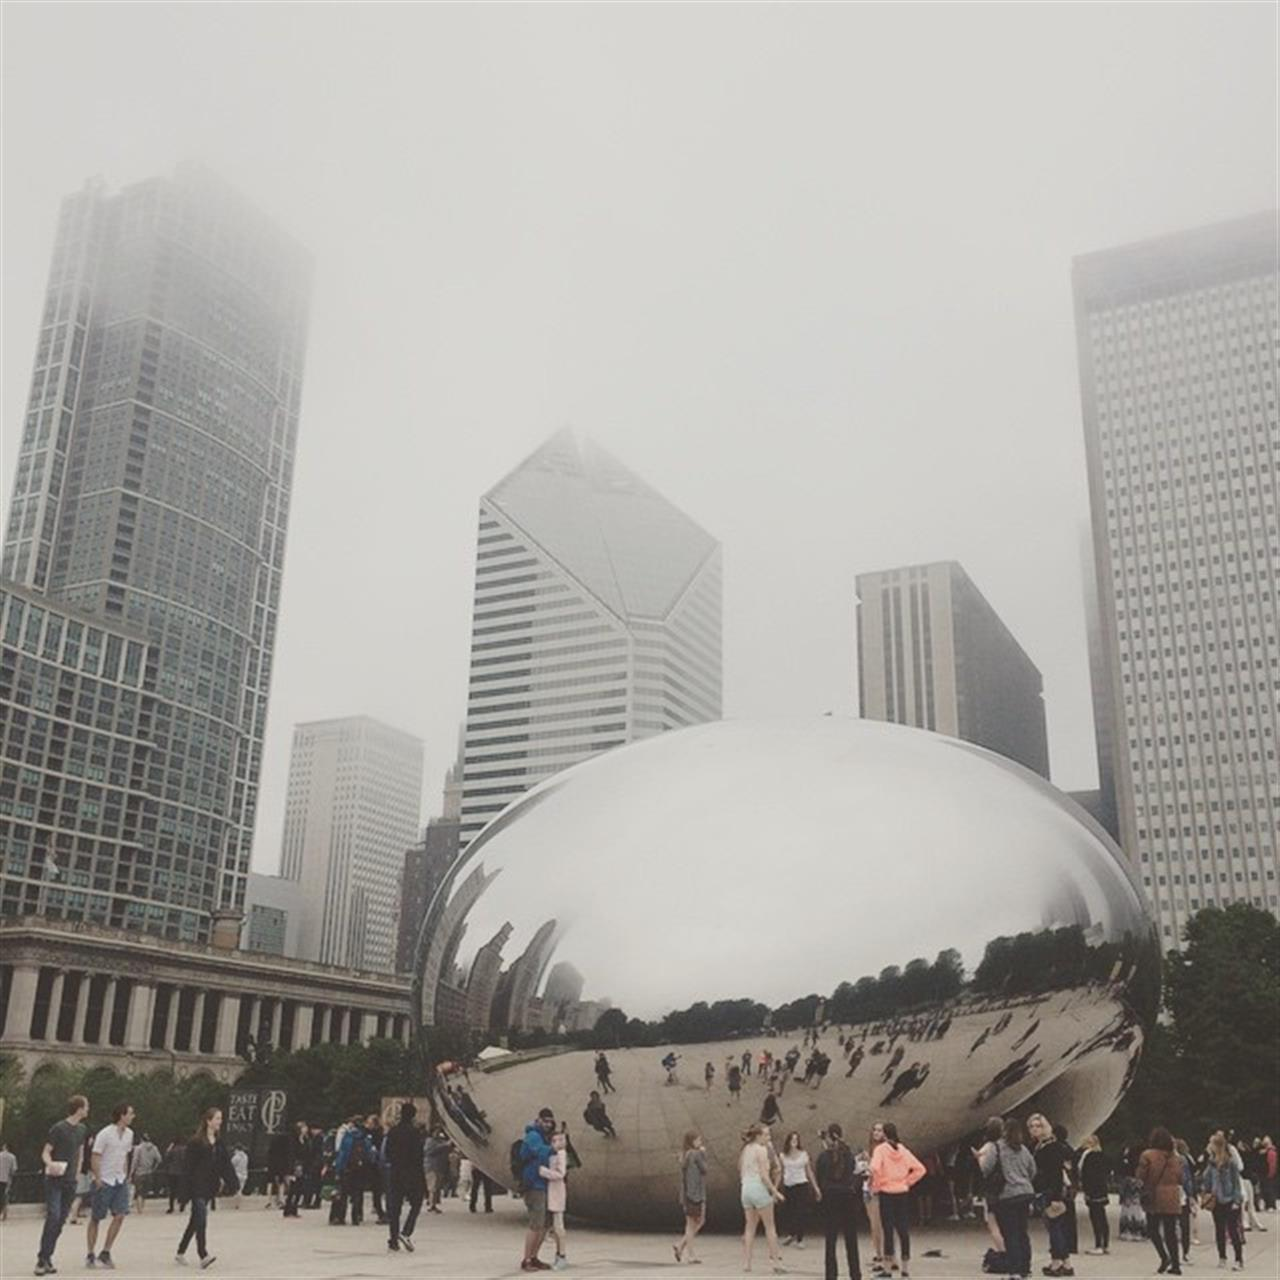 An eerie foggy day at the Bean. #cloudgate #aasquaredblog